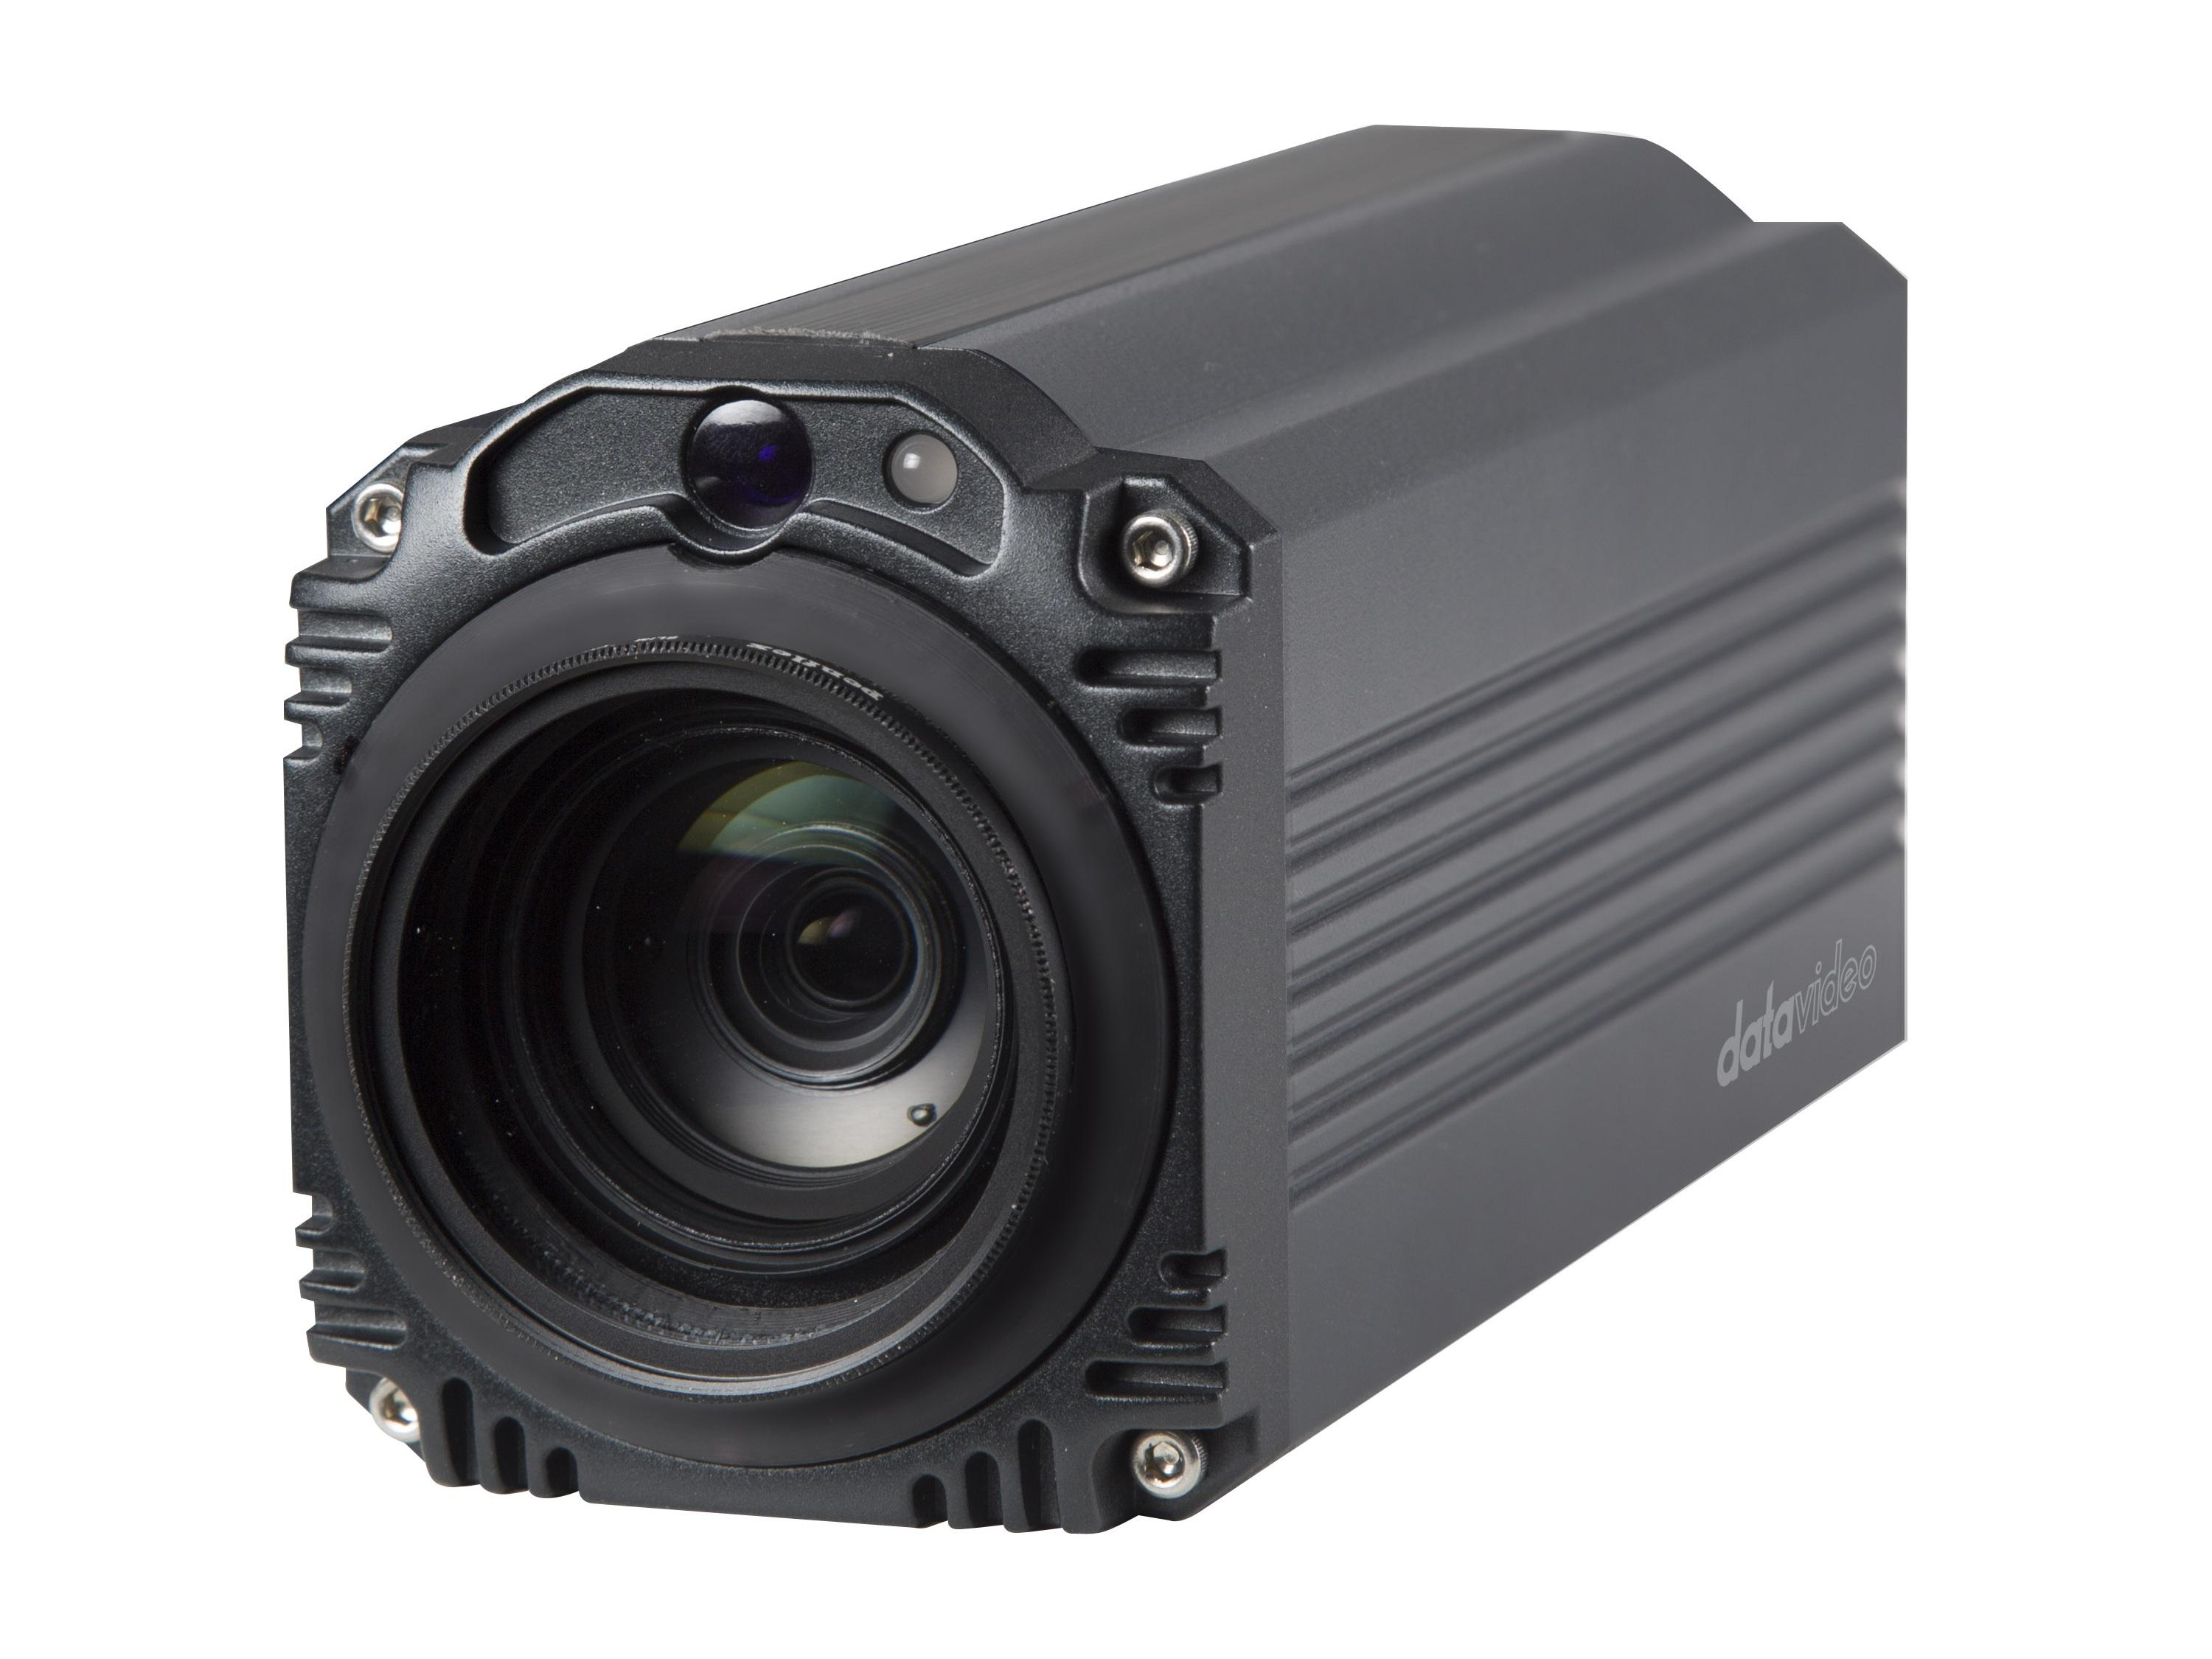 Datavideo BC-200 4K HDMI Block camera with 12x zoom